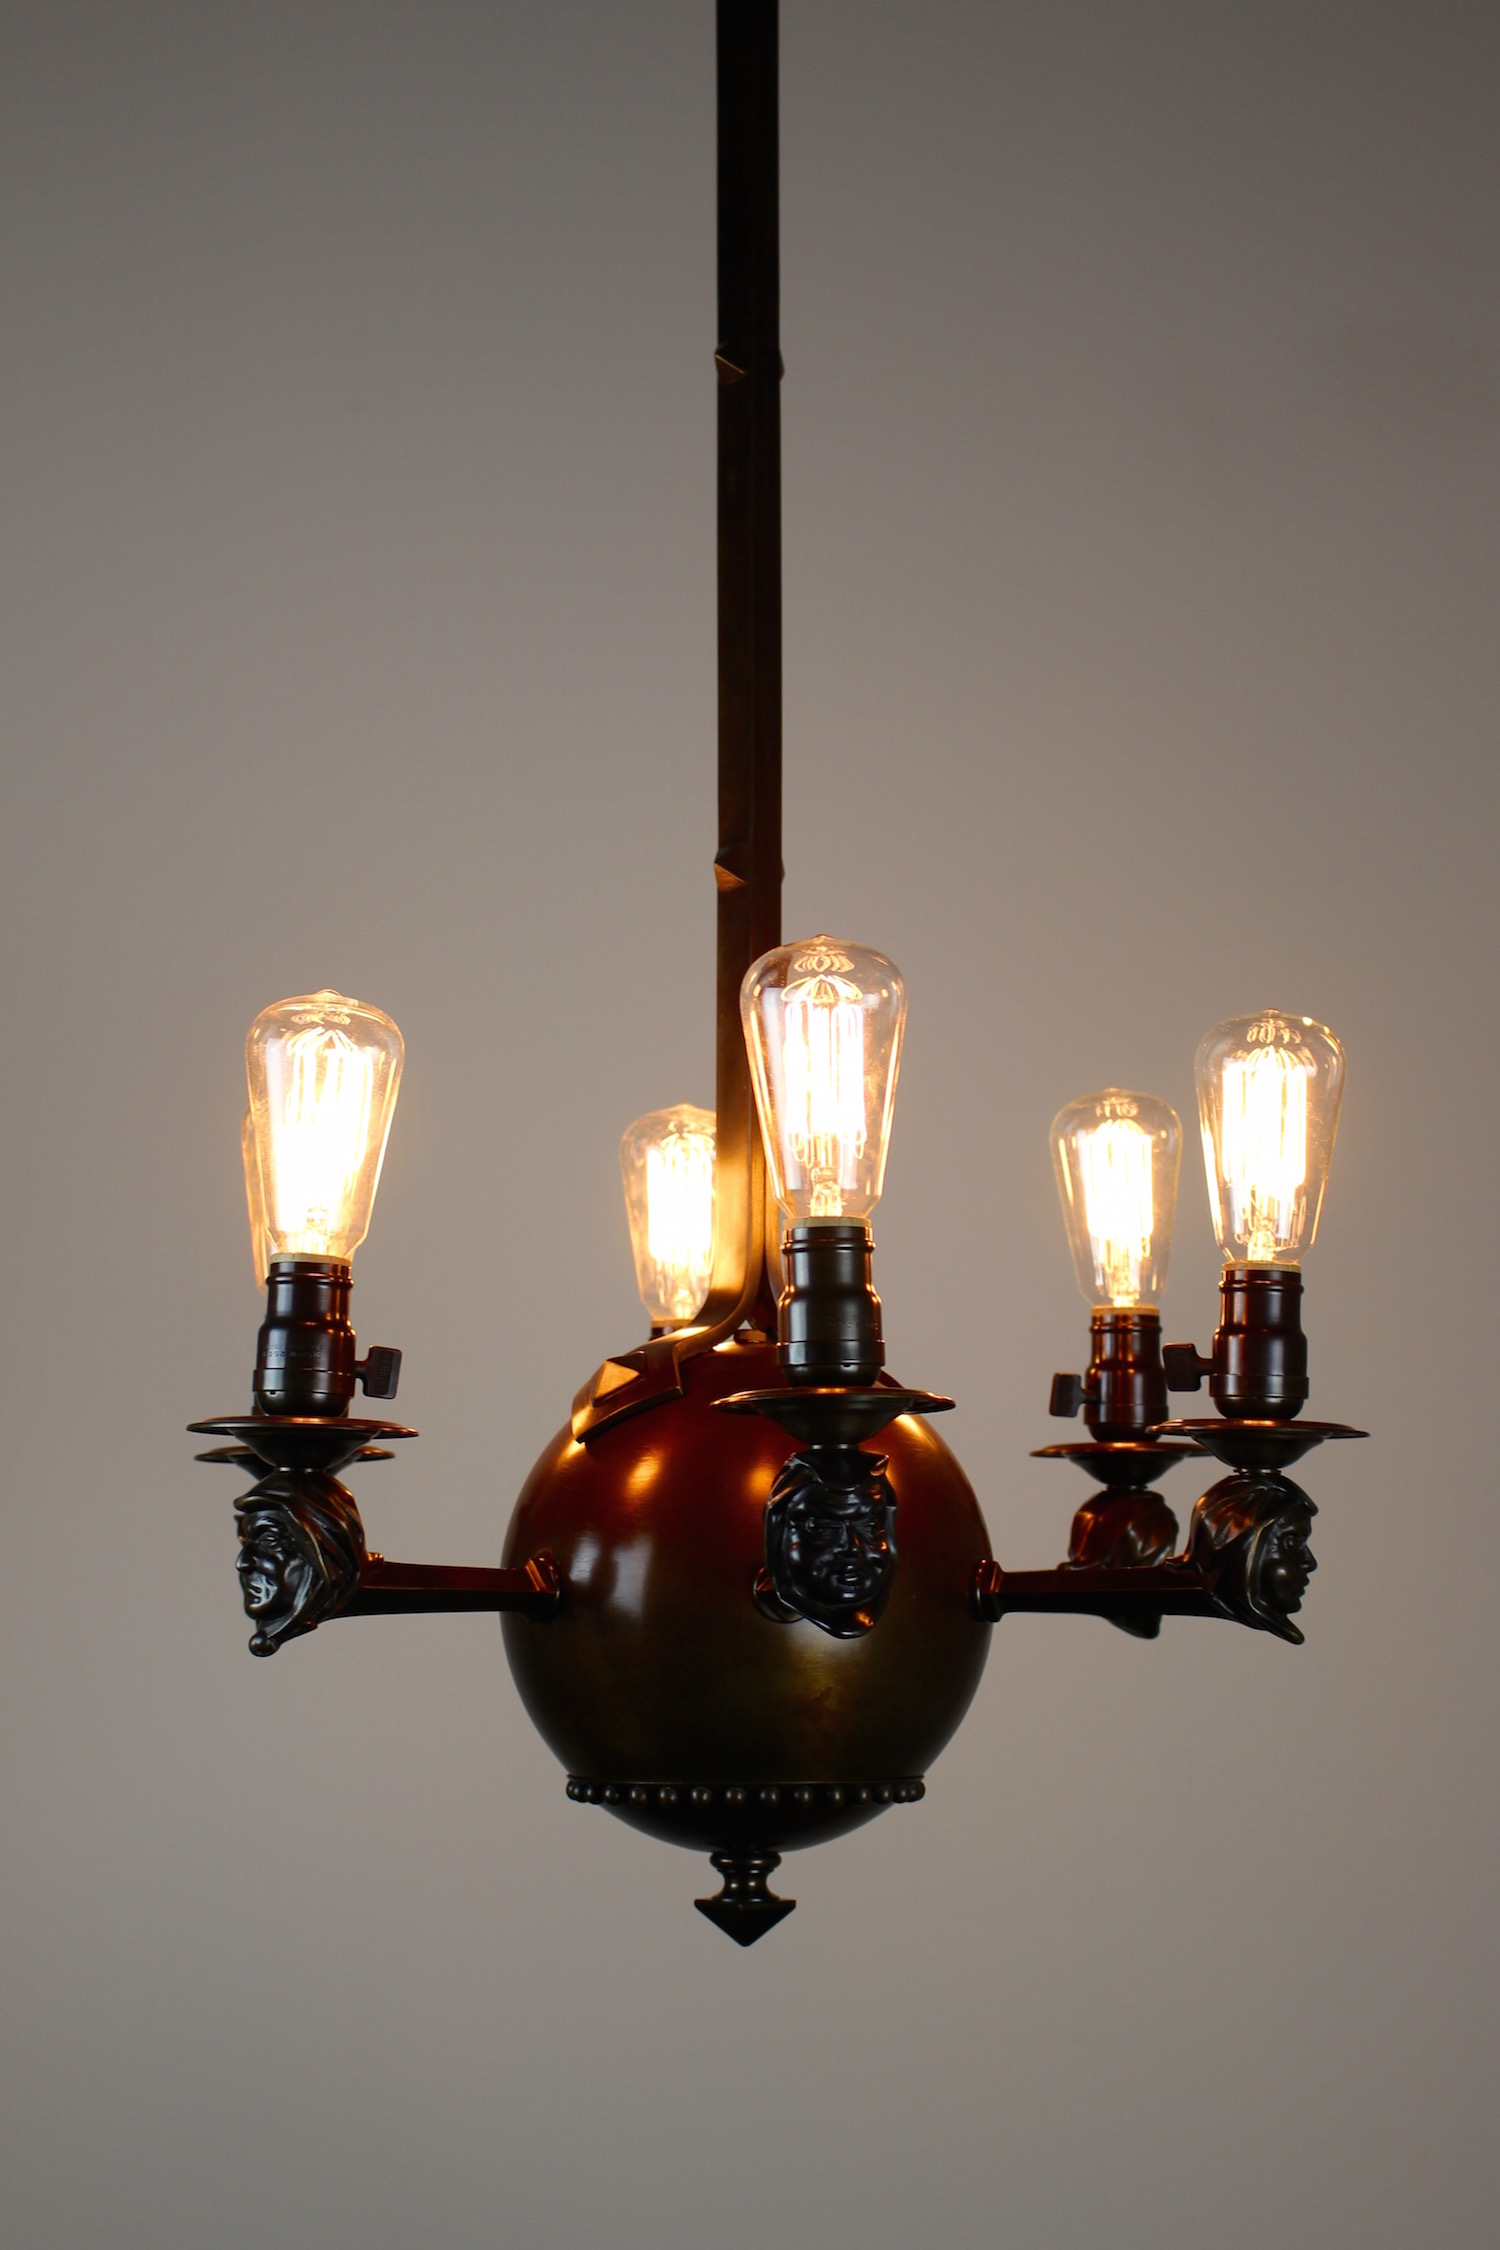 Arts and crafts rare monk face fixture with six lights see more antique ceiling lights arubaitofo Choice Image